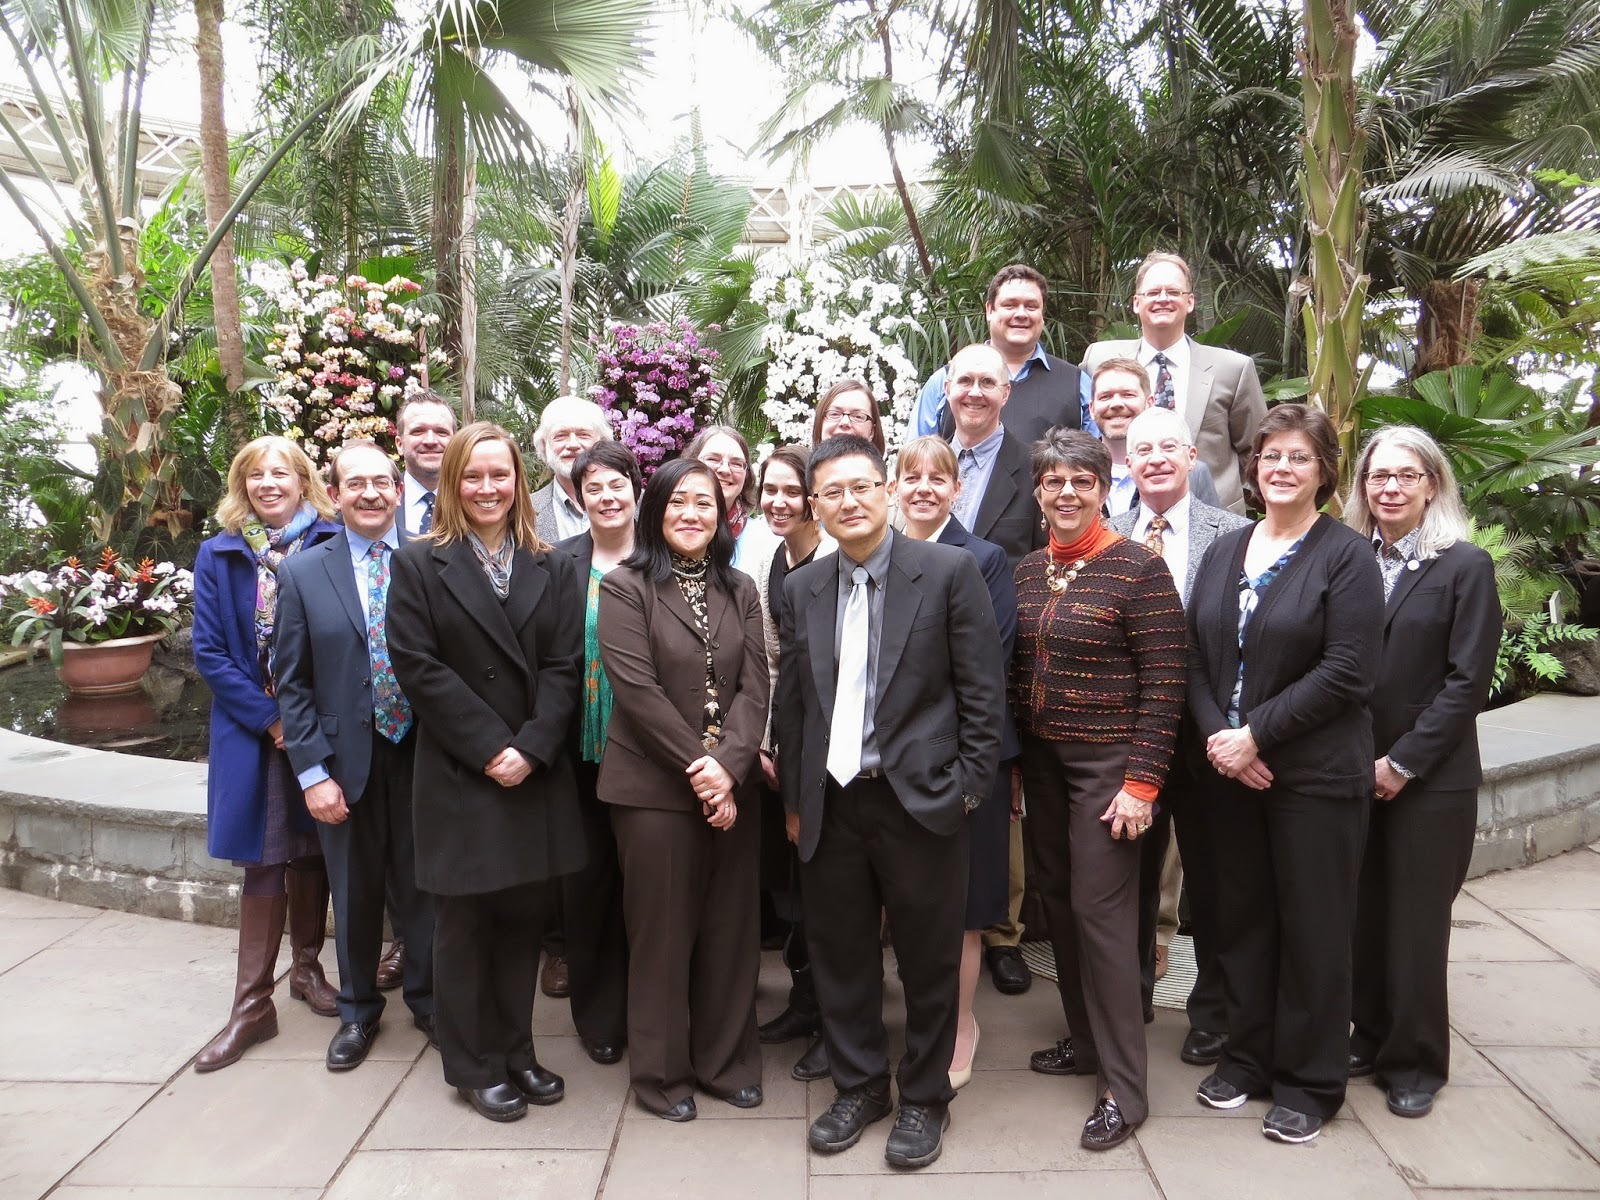 A group of people standing outside in front of a tropical garden of plants.